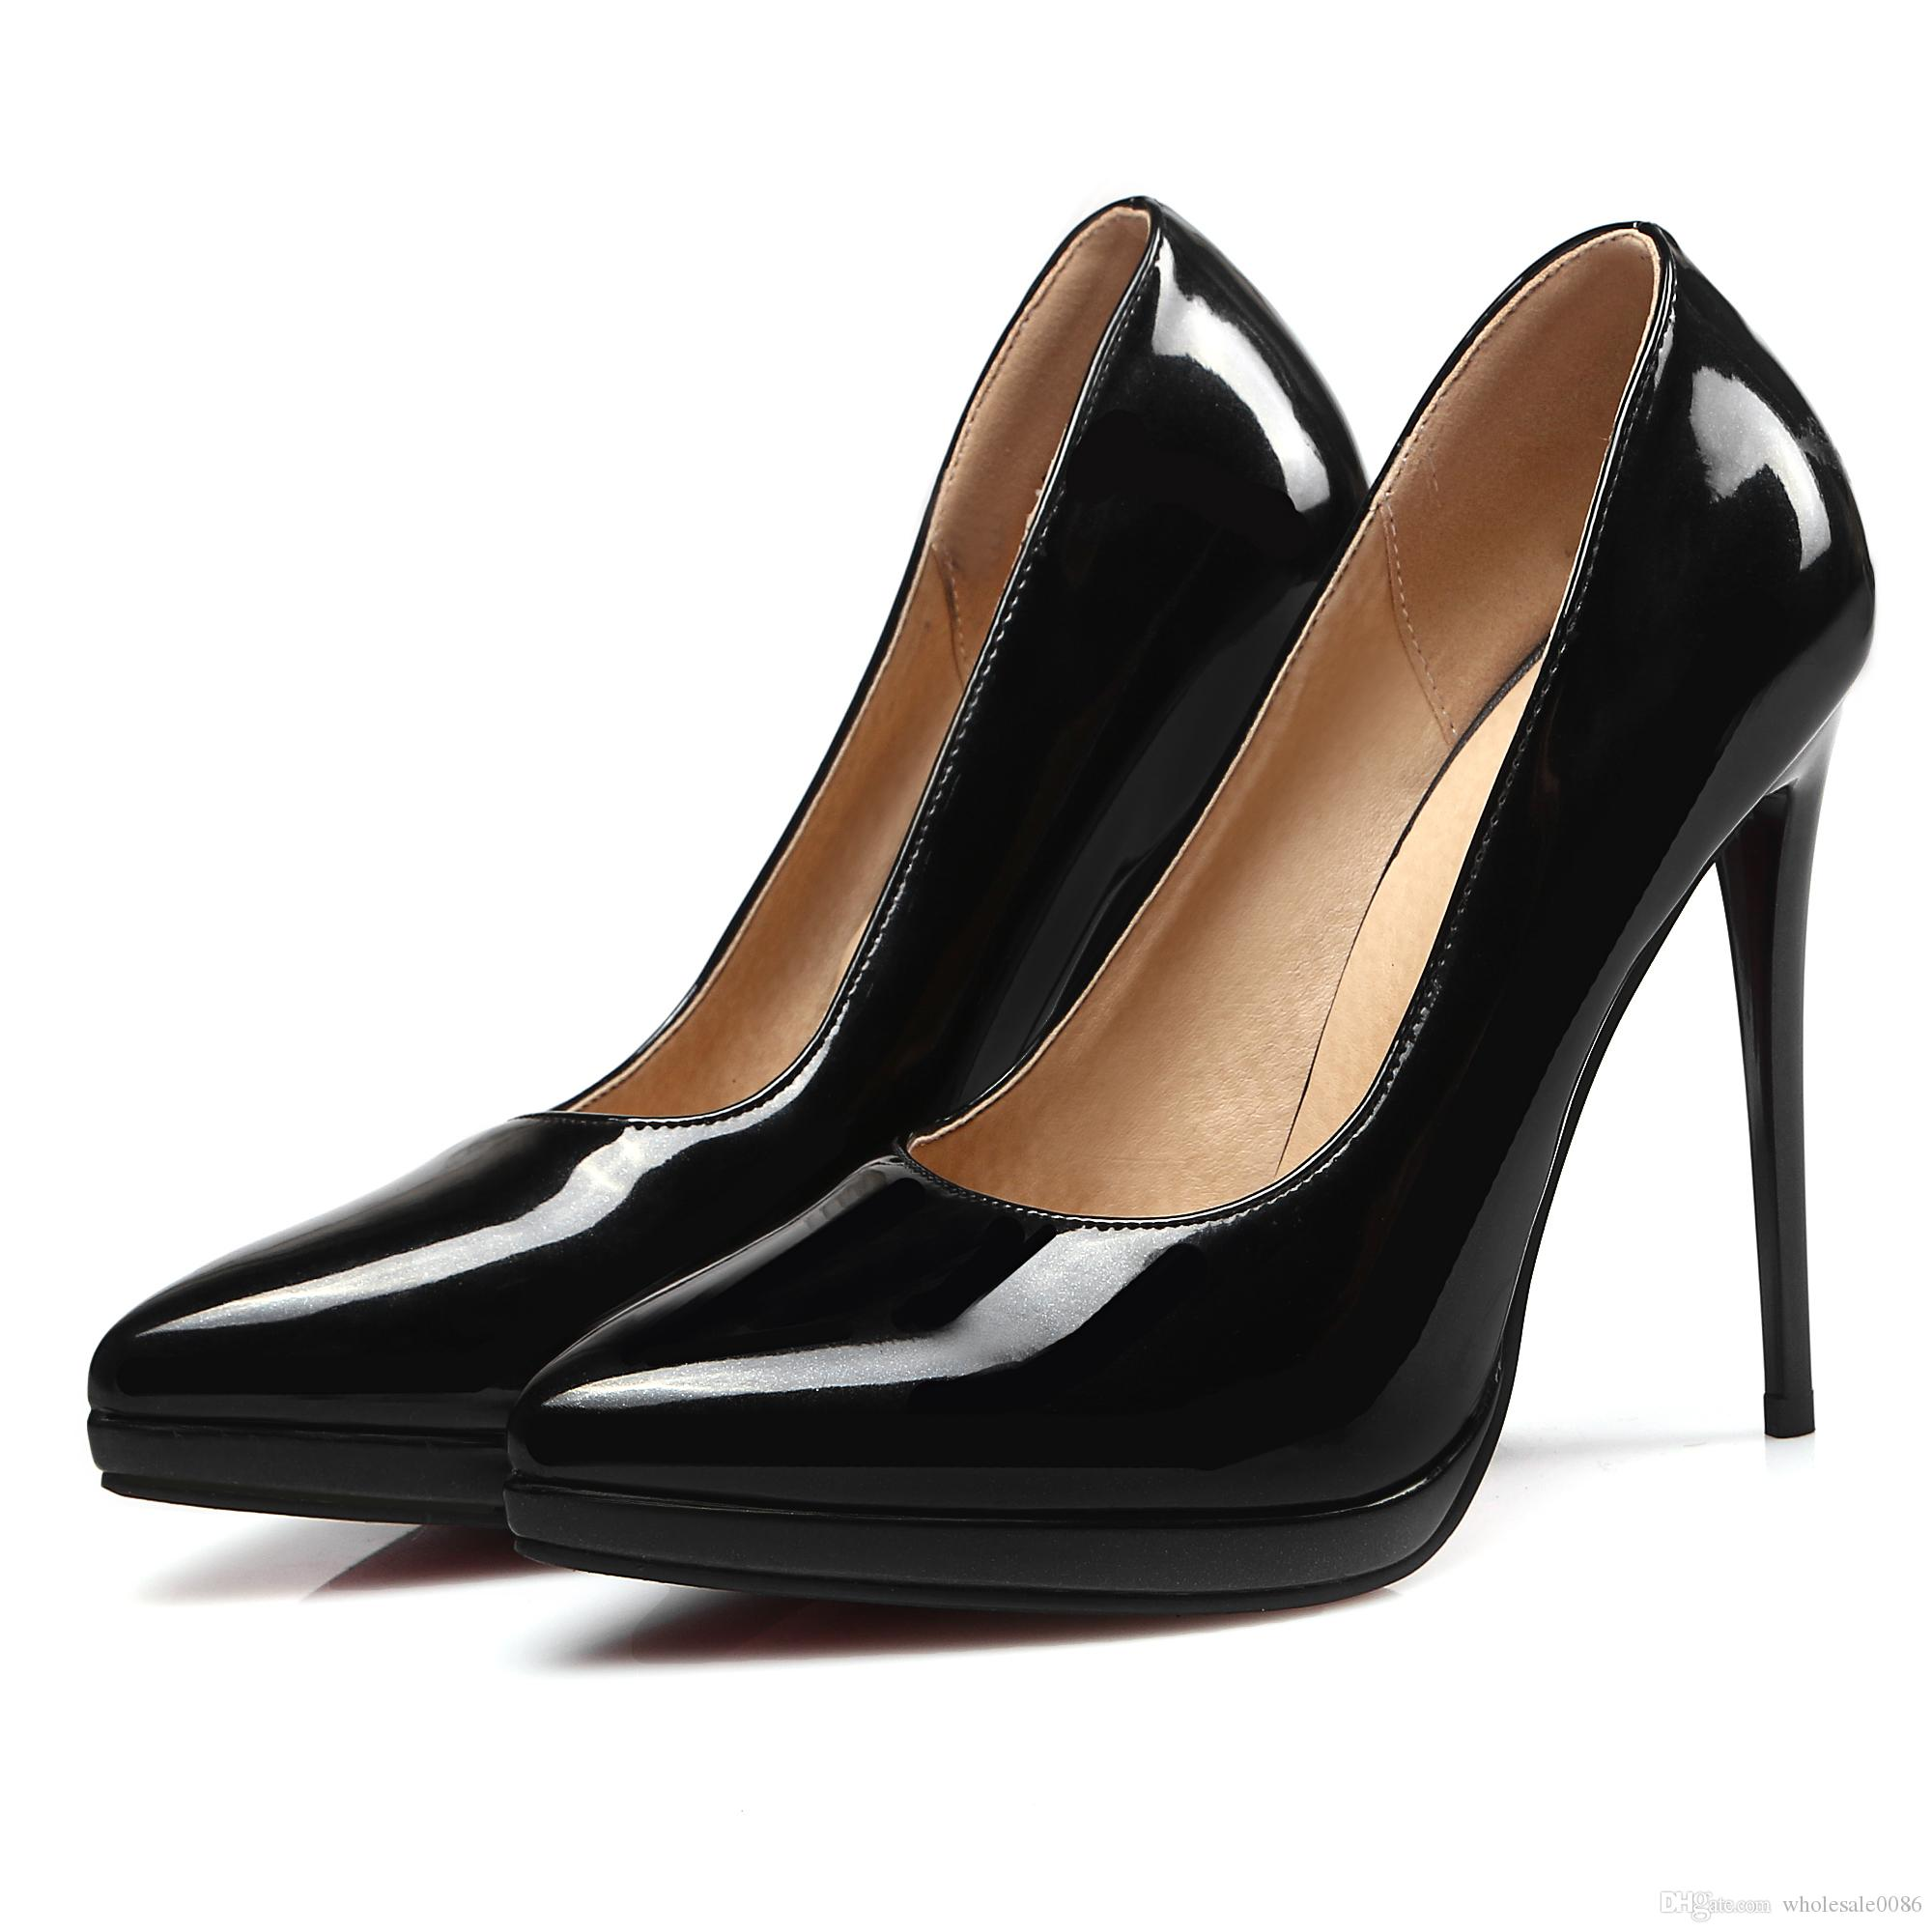 f02f0057a Fashion Women's Synthetic Leather Sexy Platform High Heel Pumps ...